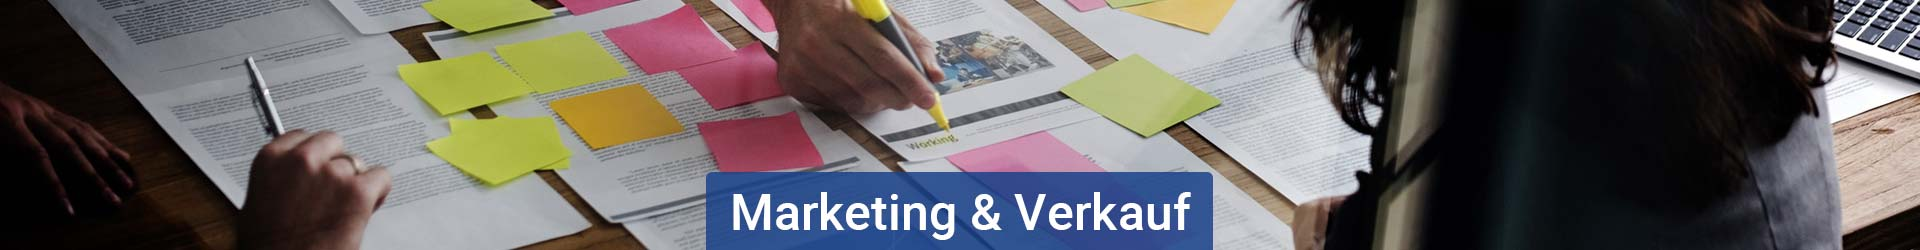 Thema Marketing & Verkauf